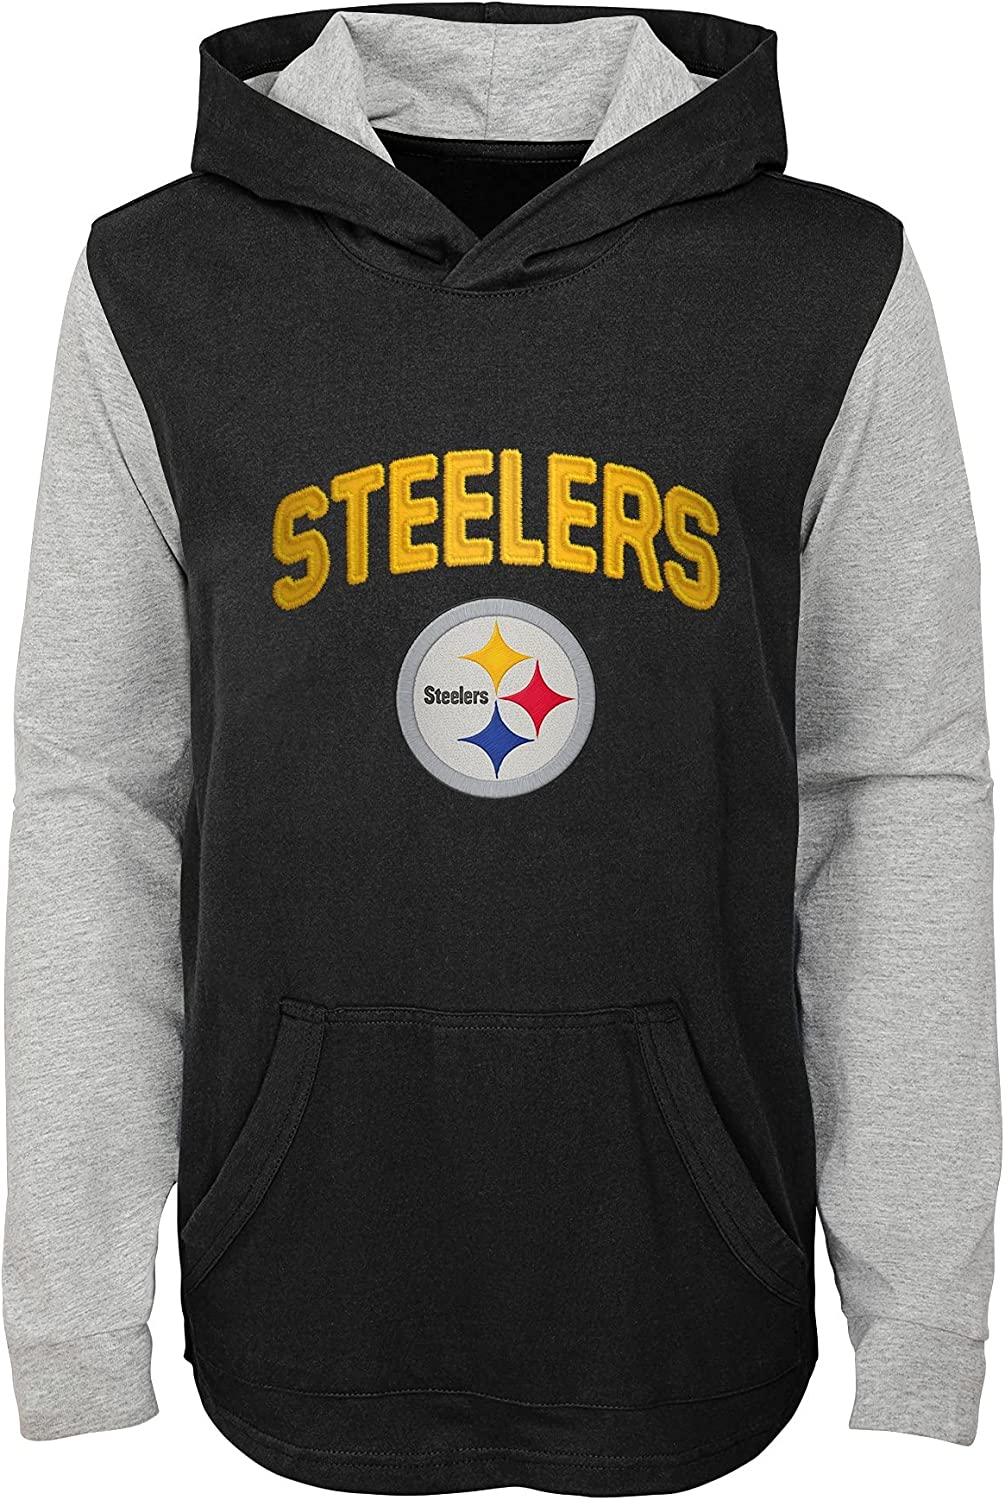 Outerstuff NFL 2021 Boys Challenge the lowest price Youth Legend 8-20 Hoodie